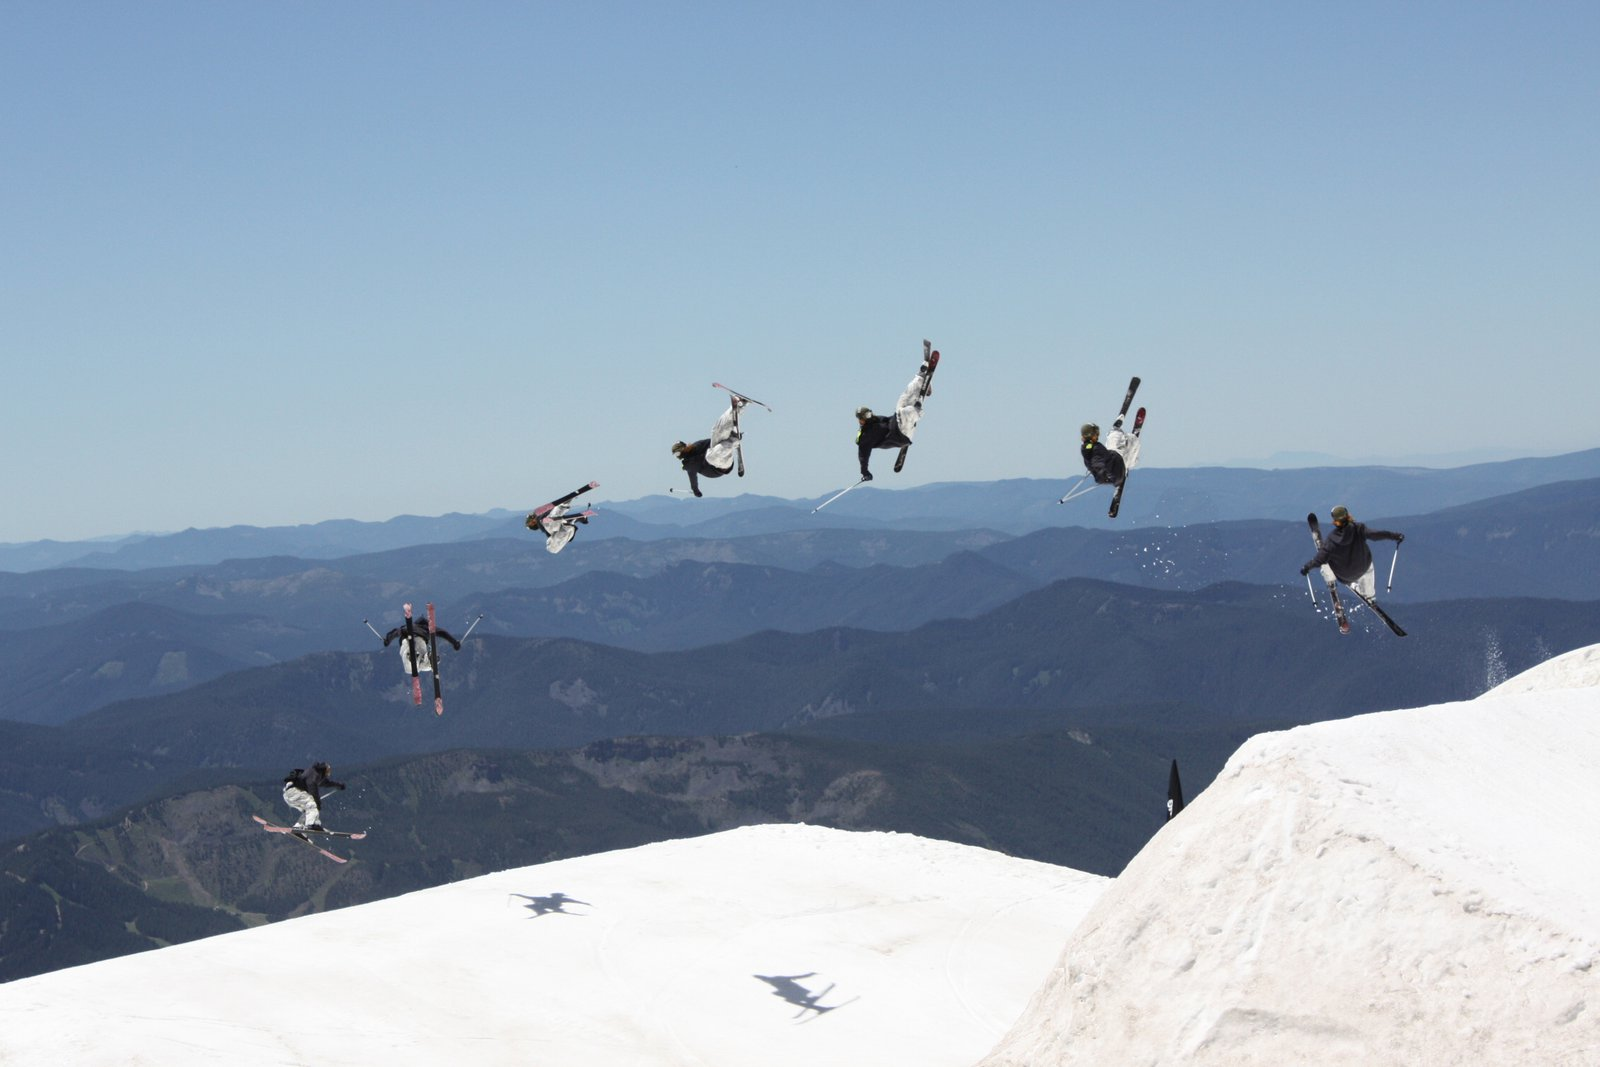 Moxam Sequence at Windells